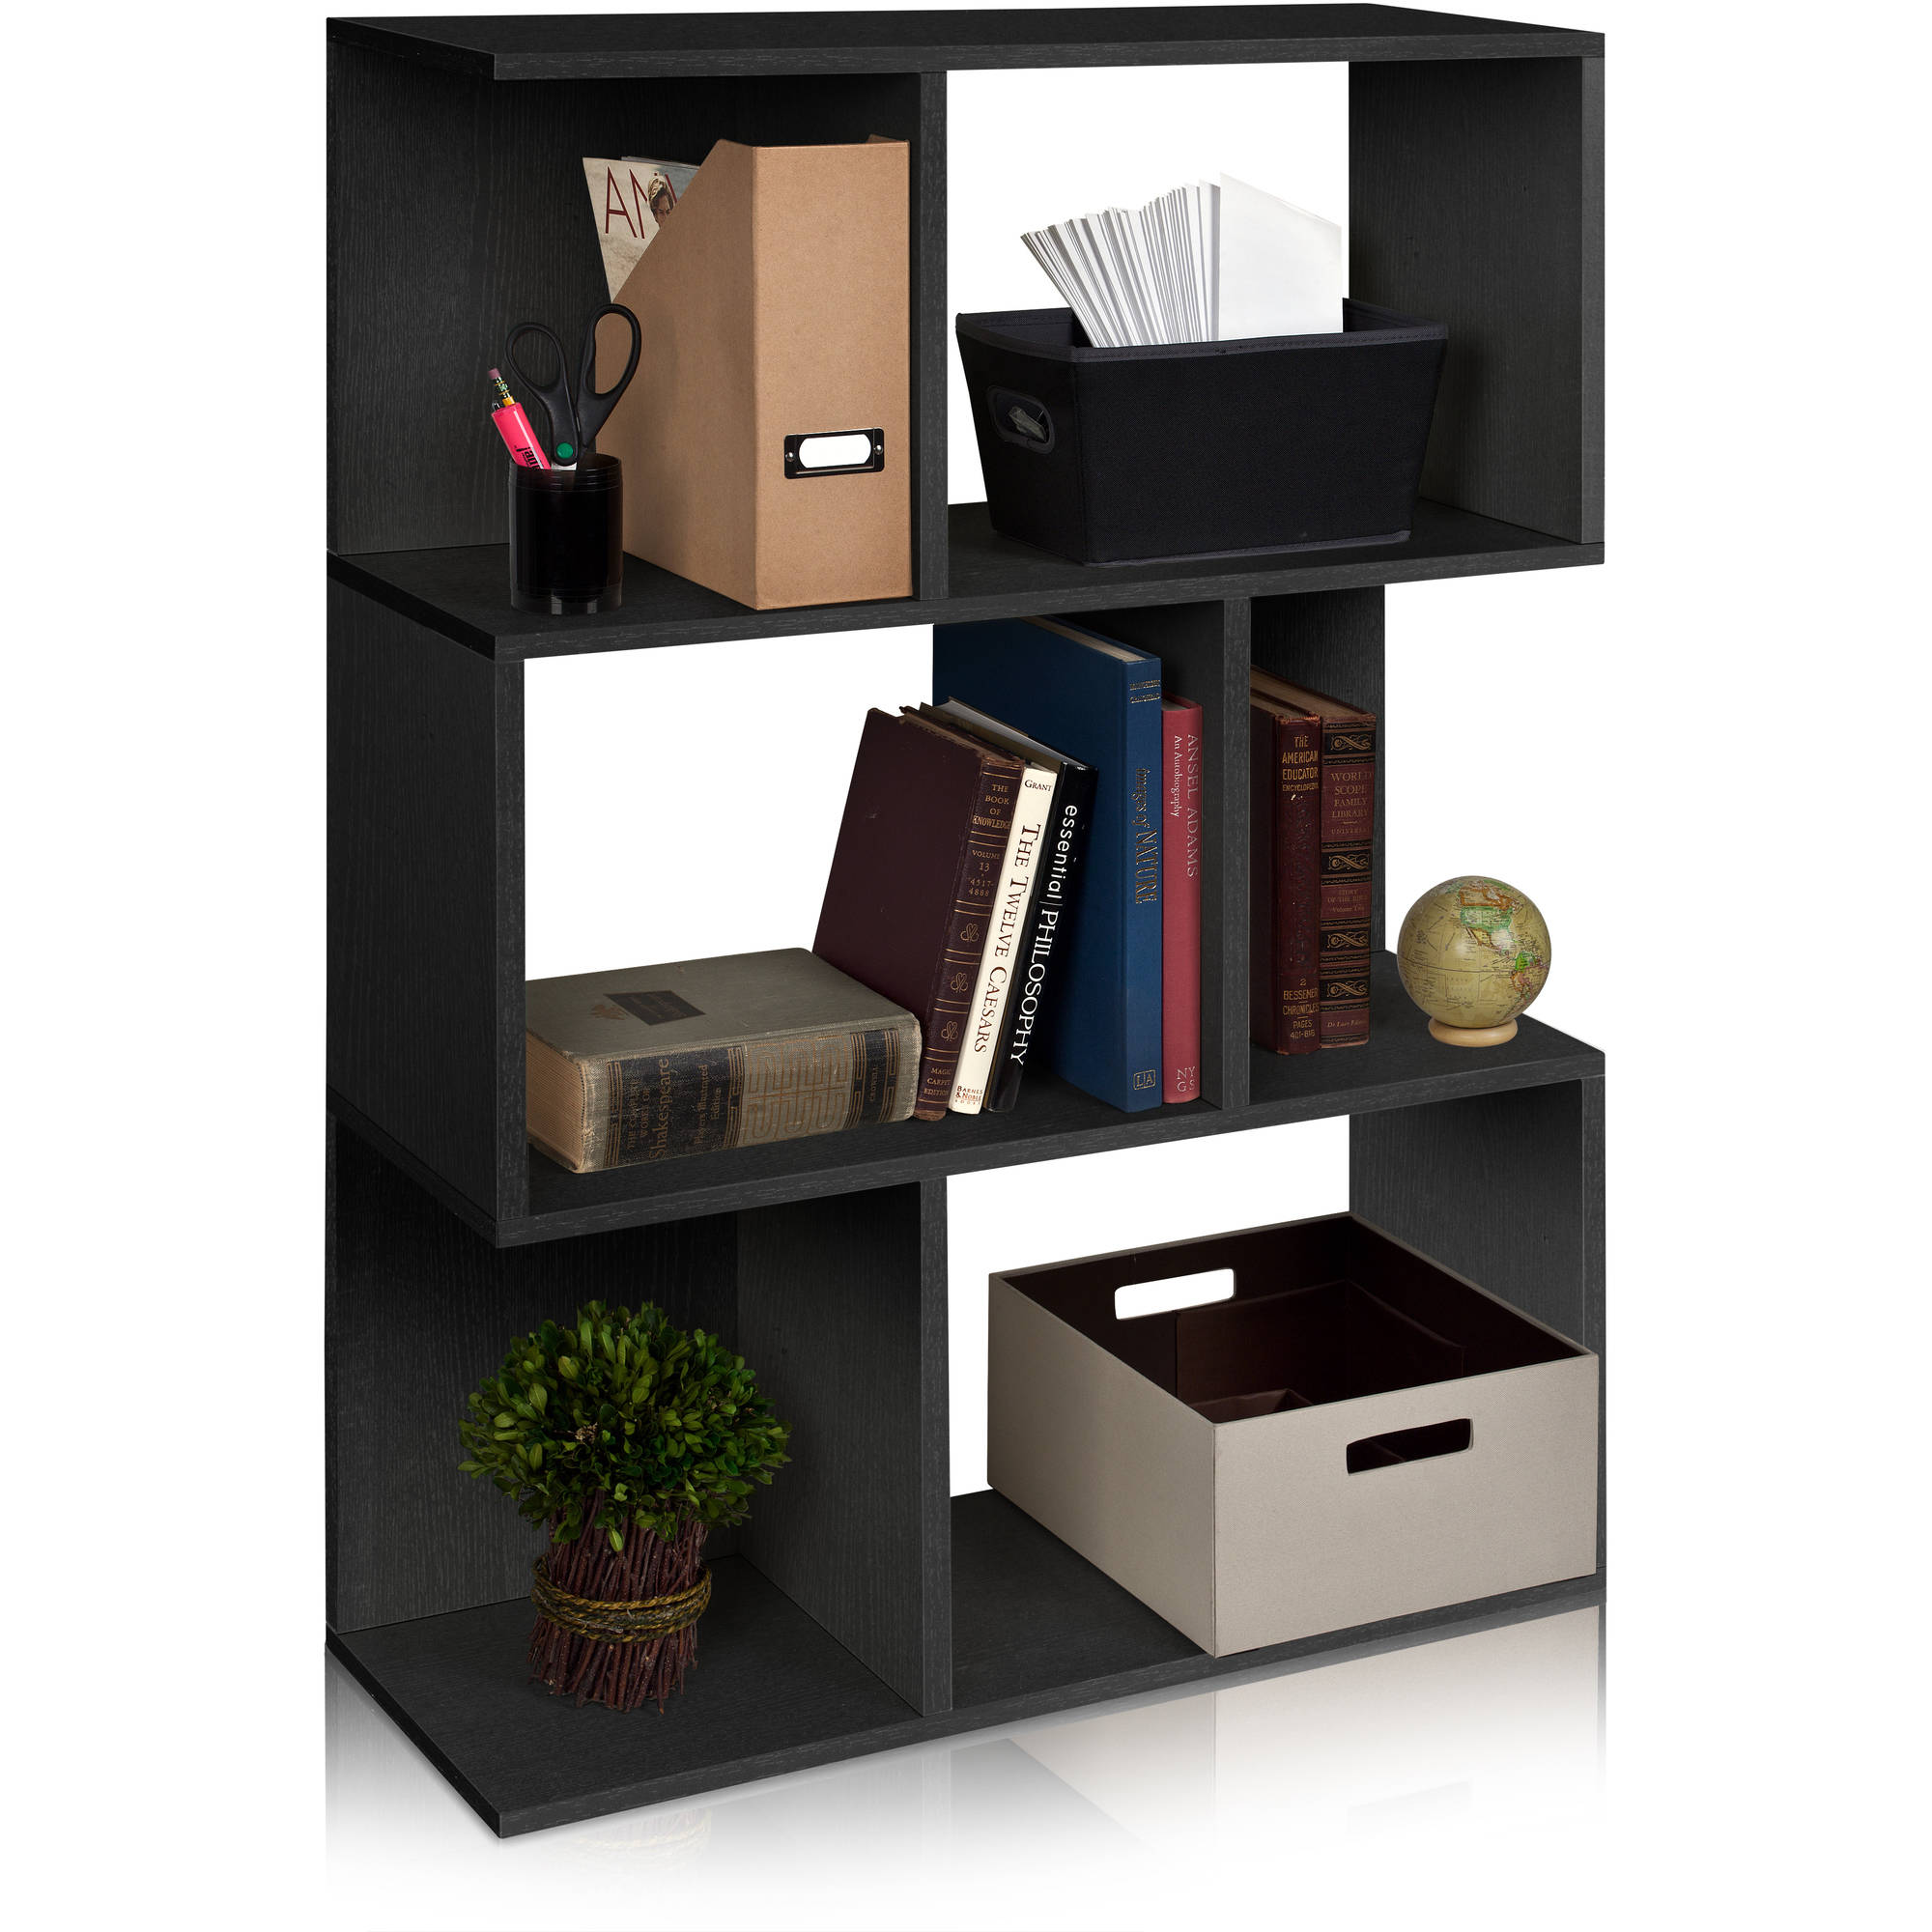 Way Basics Eco Madison Bookcase, Room Divider and Storage Shelf, Black